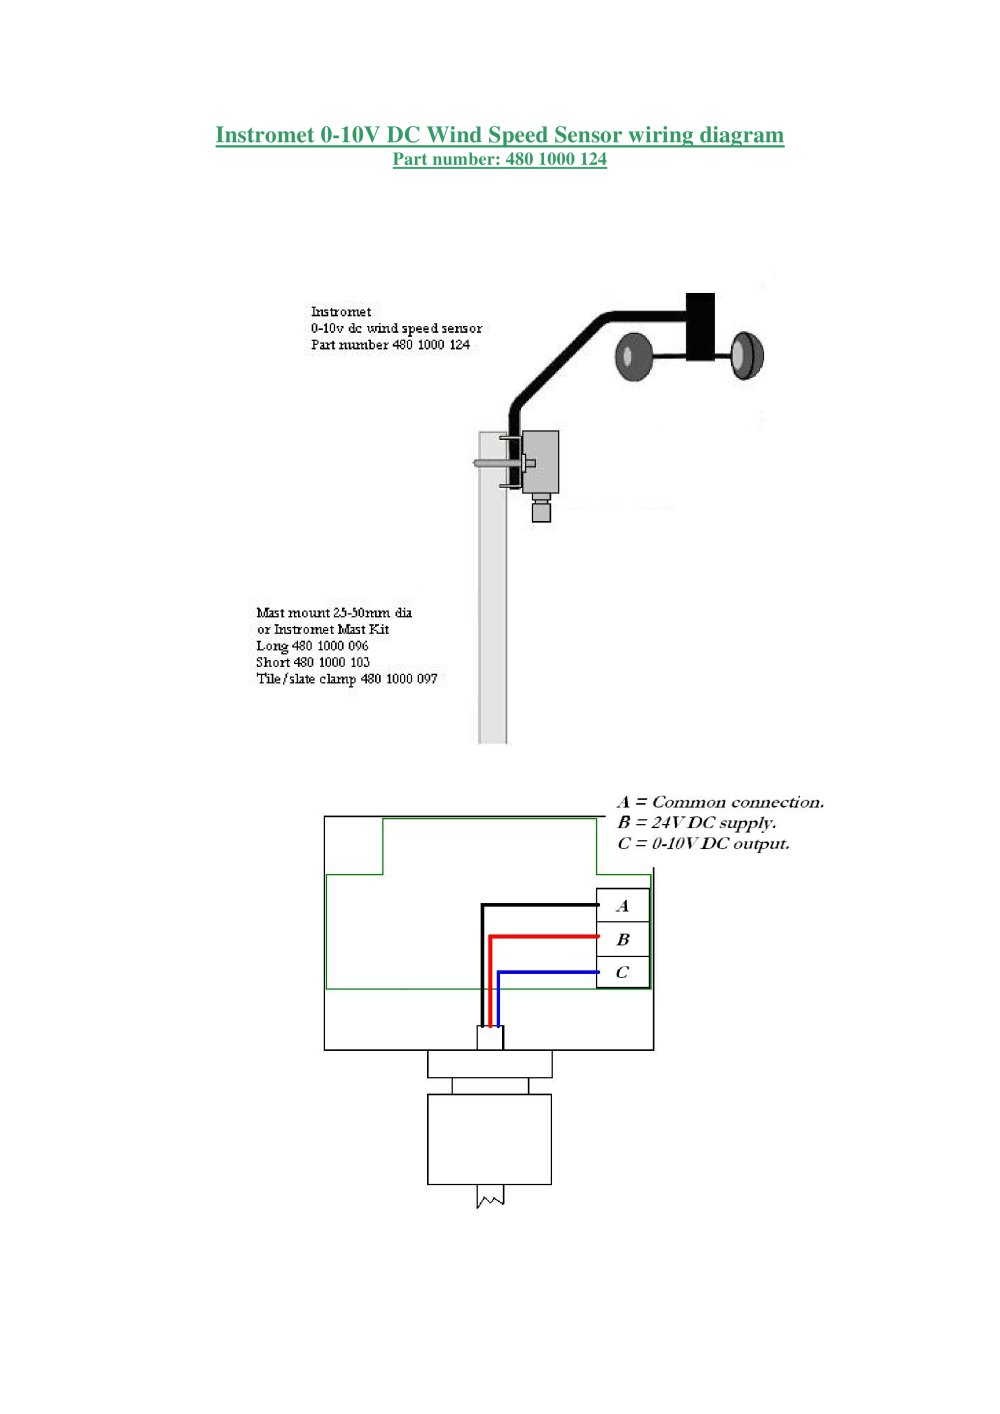 Instromet 0-10V DC Wind Speed Sensor wiring diagram - 1 / 2 Pages